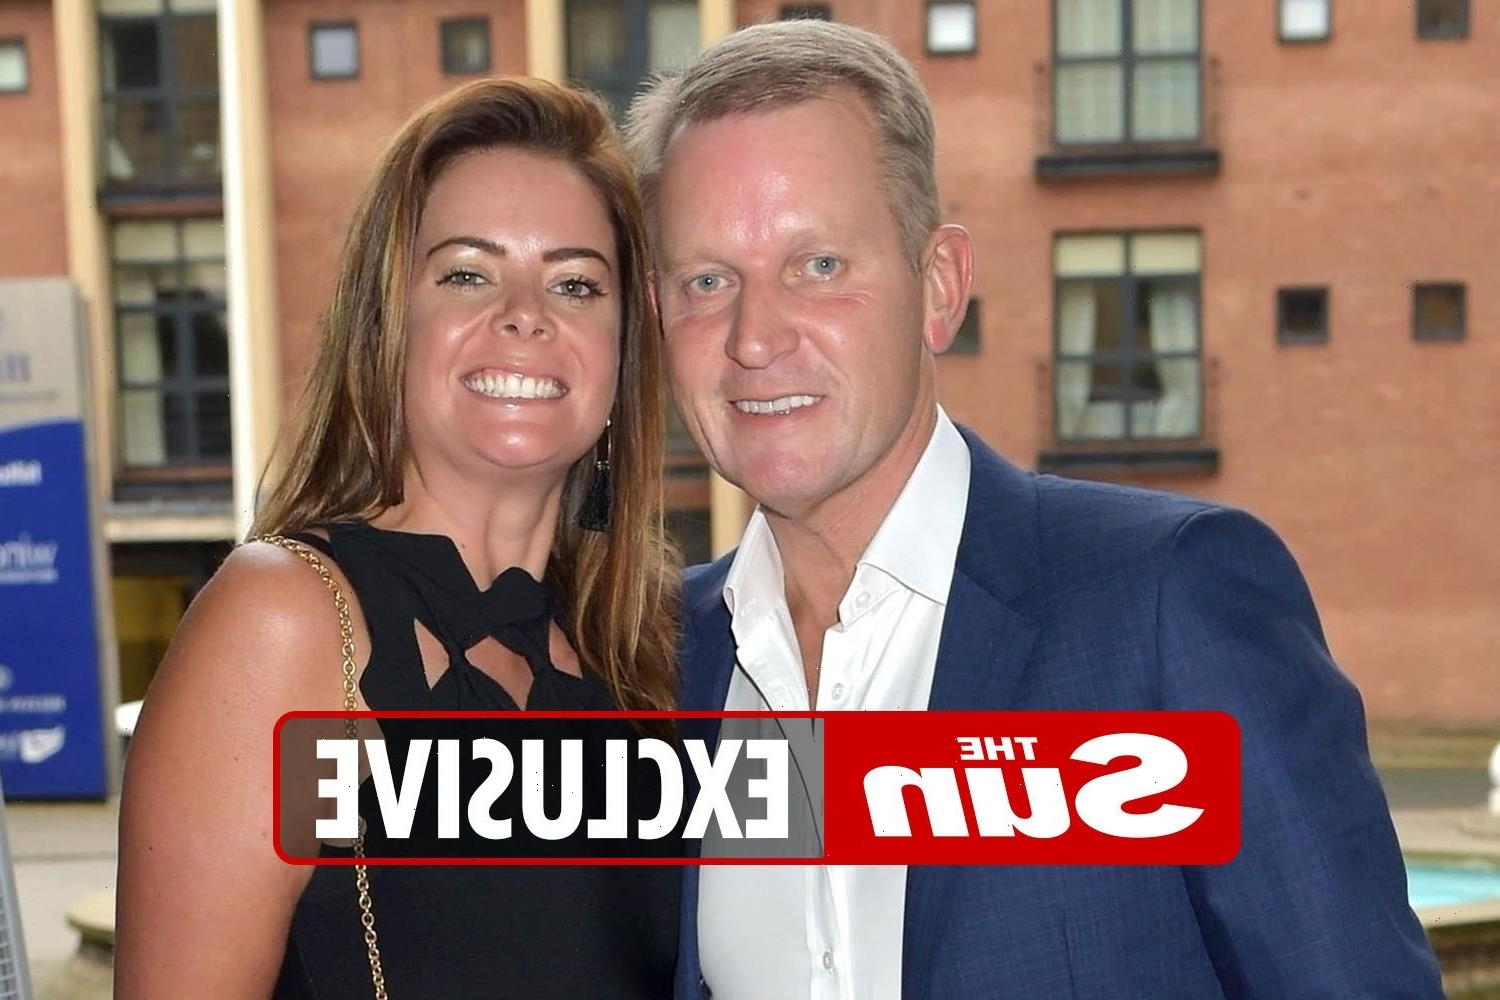 Jeremy Kyle reveals fiancée Victoria pulled him back from the brink after he fell into deep depression